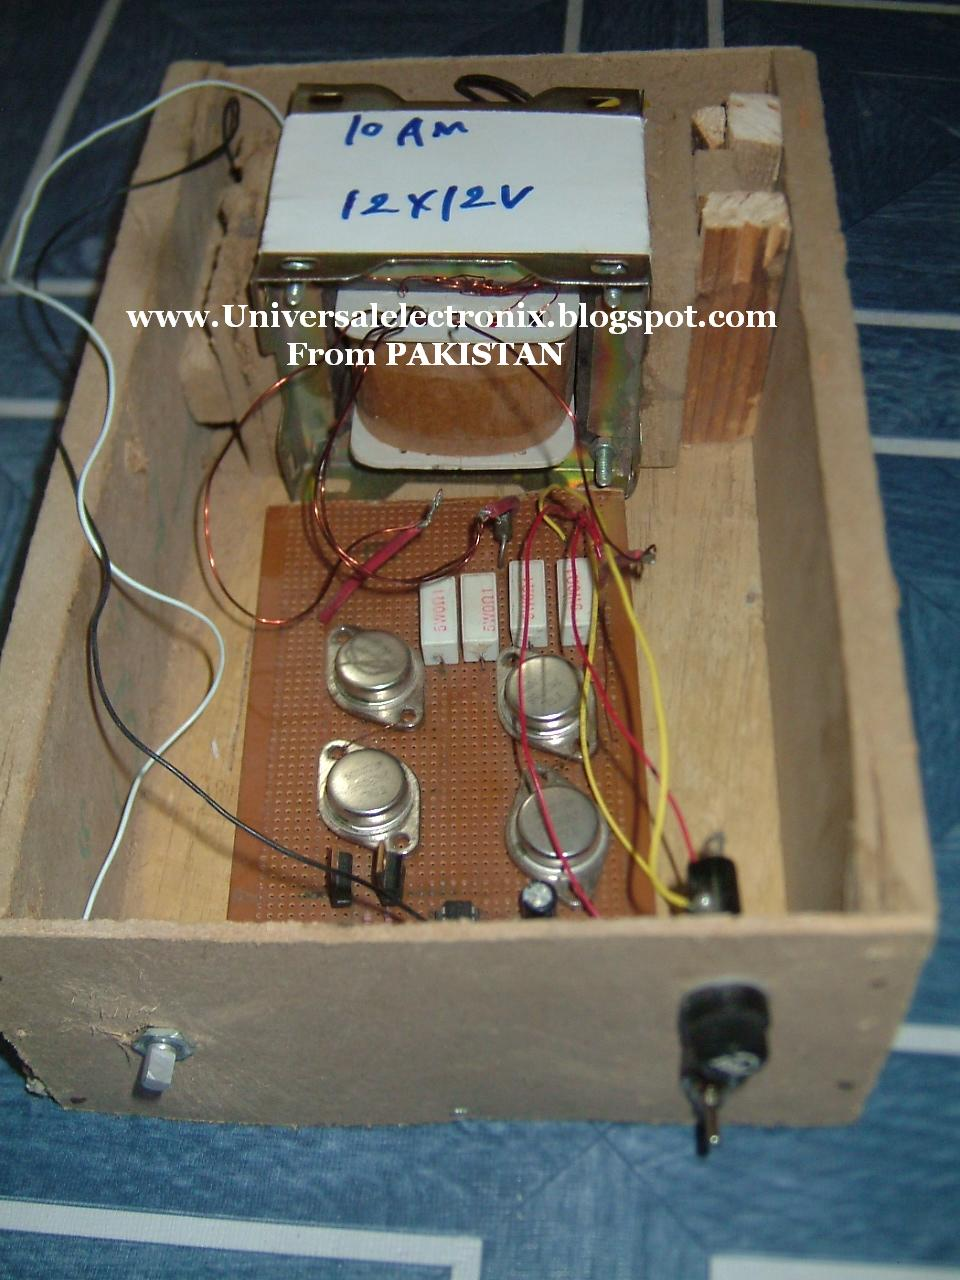 100 W Inverter Circuit Diagram Wiring Library Ruud Furnace 90 21283 Watt Photosclick To Large